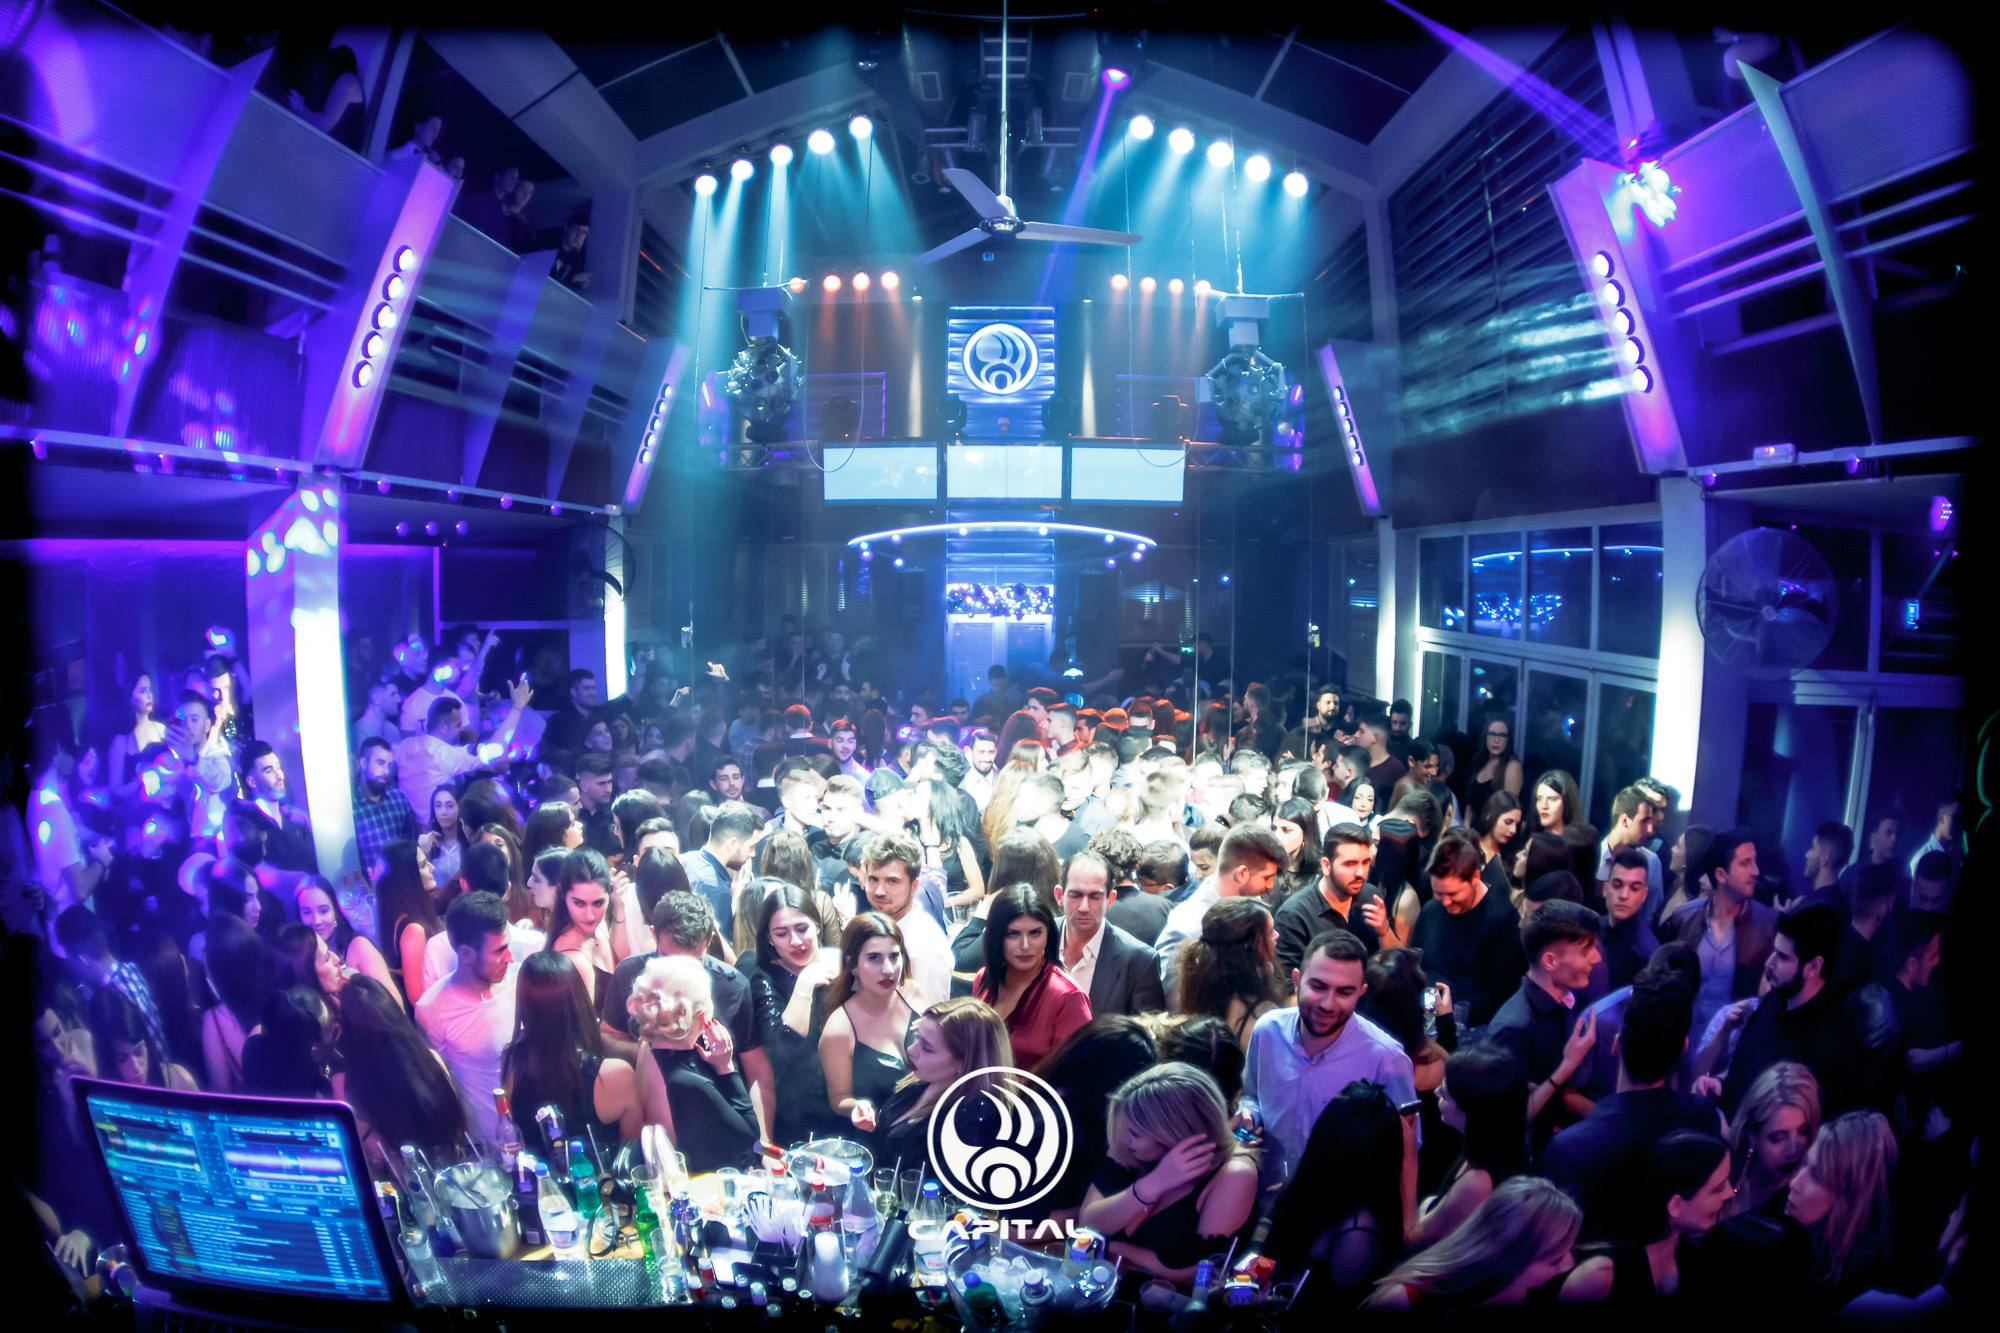 Capital Nightclub